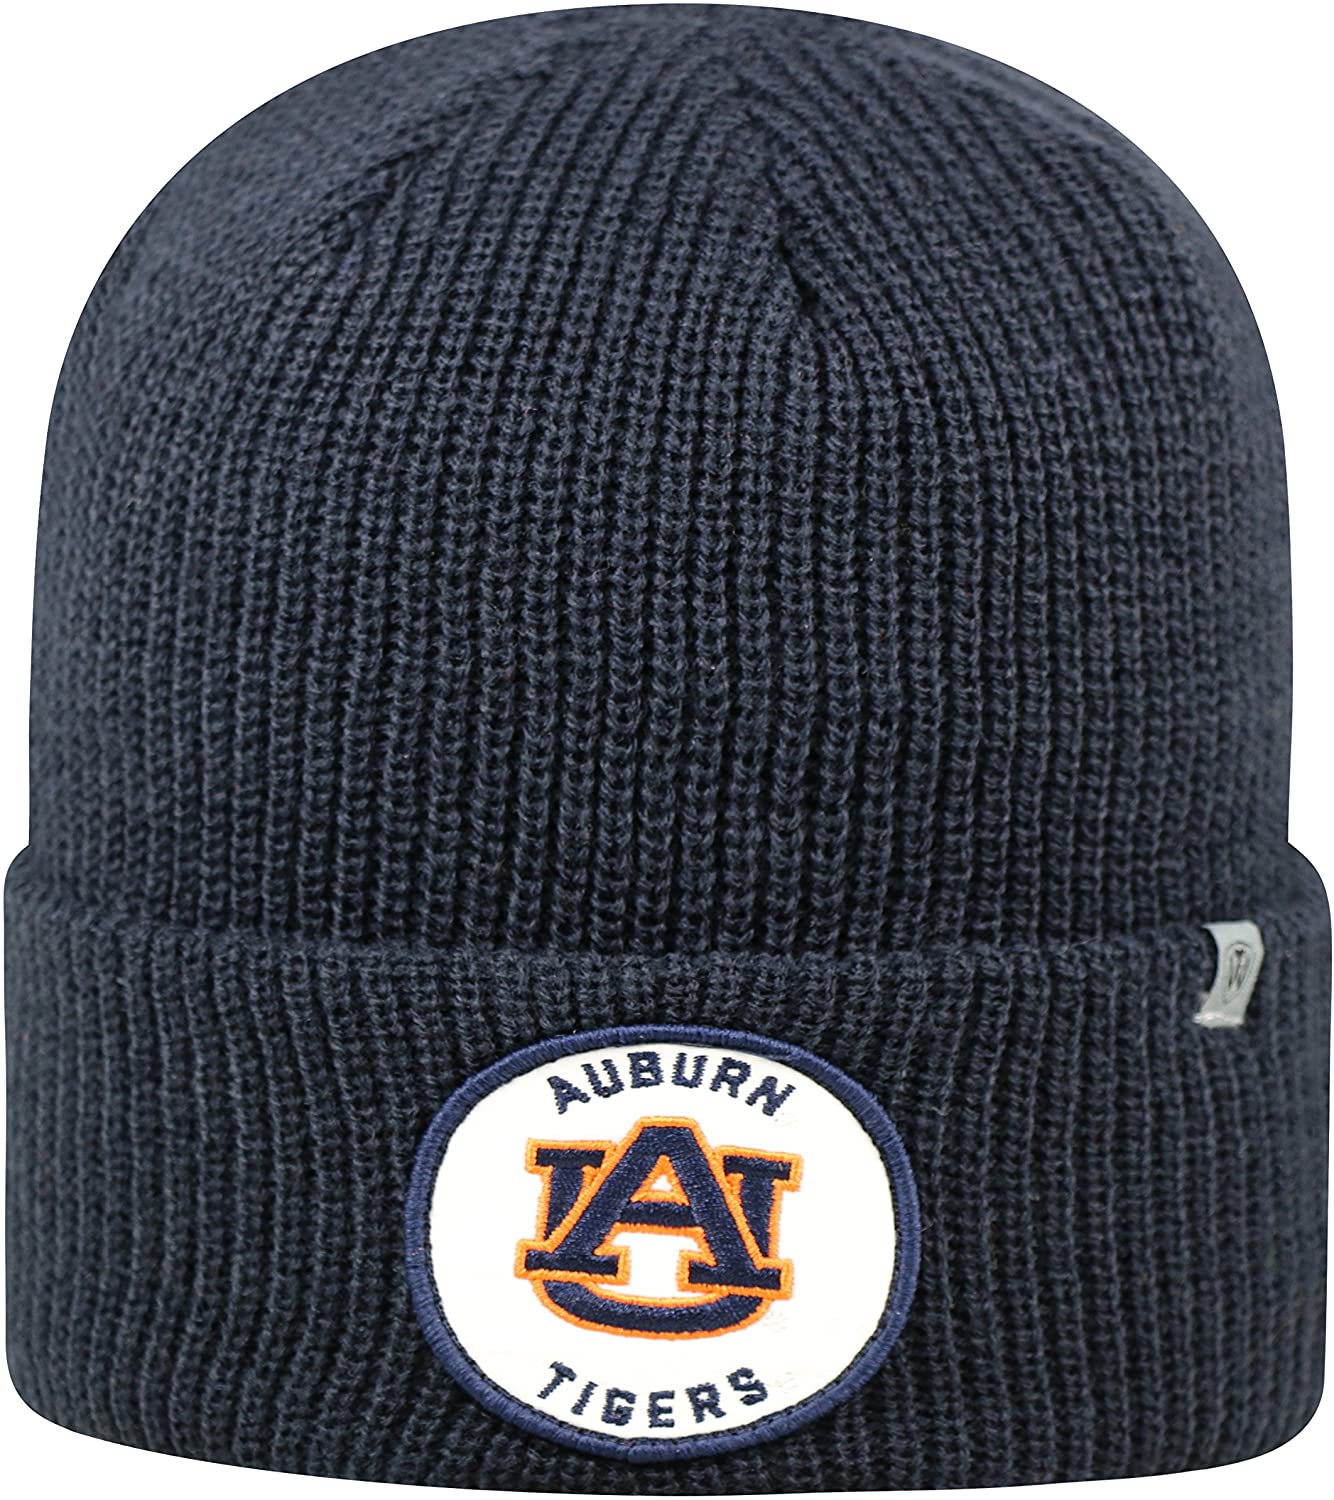 Top of the World Auburn Tigers Official NCAA Cuffed Knit Wharf Beanie Stocking Stretch Sock Hat Cap 843926